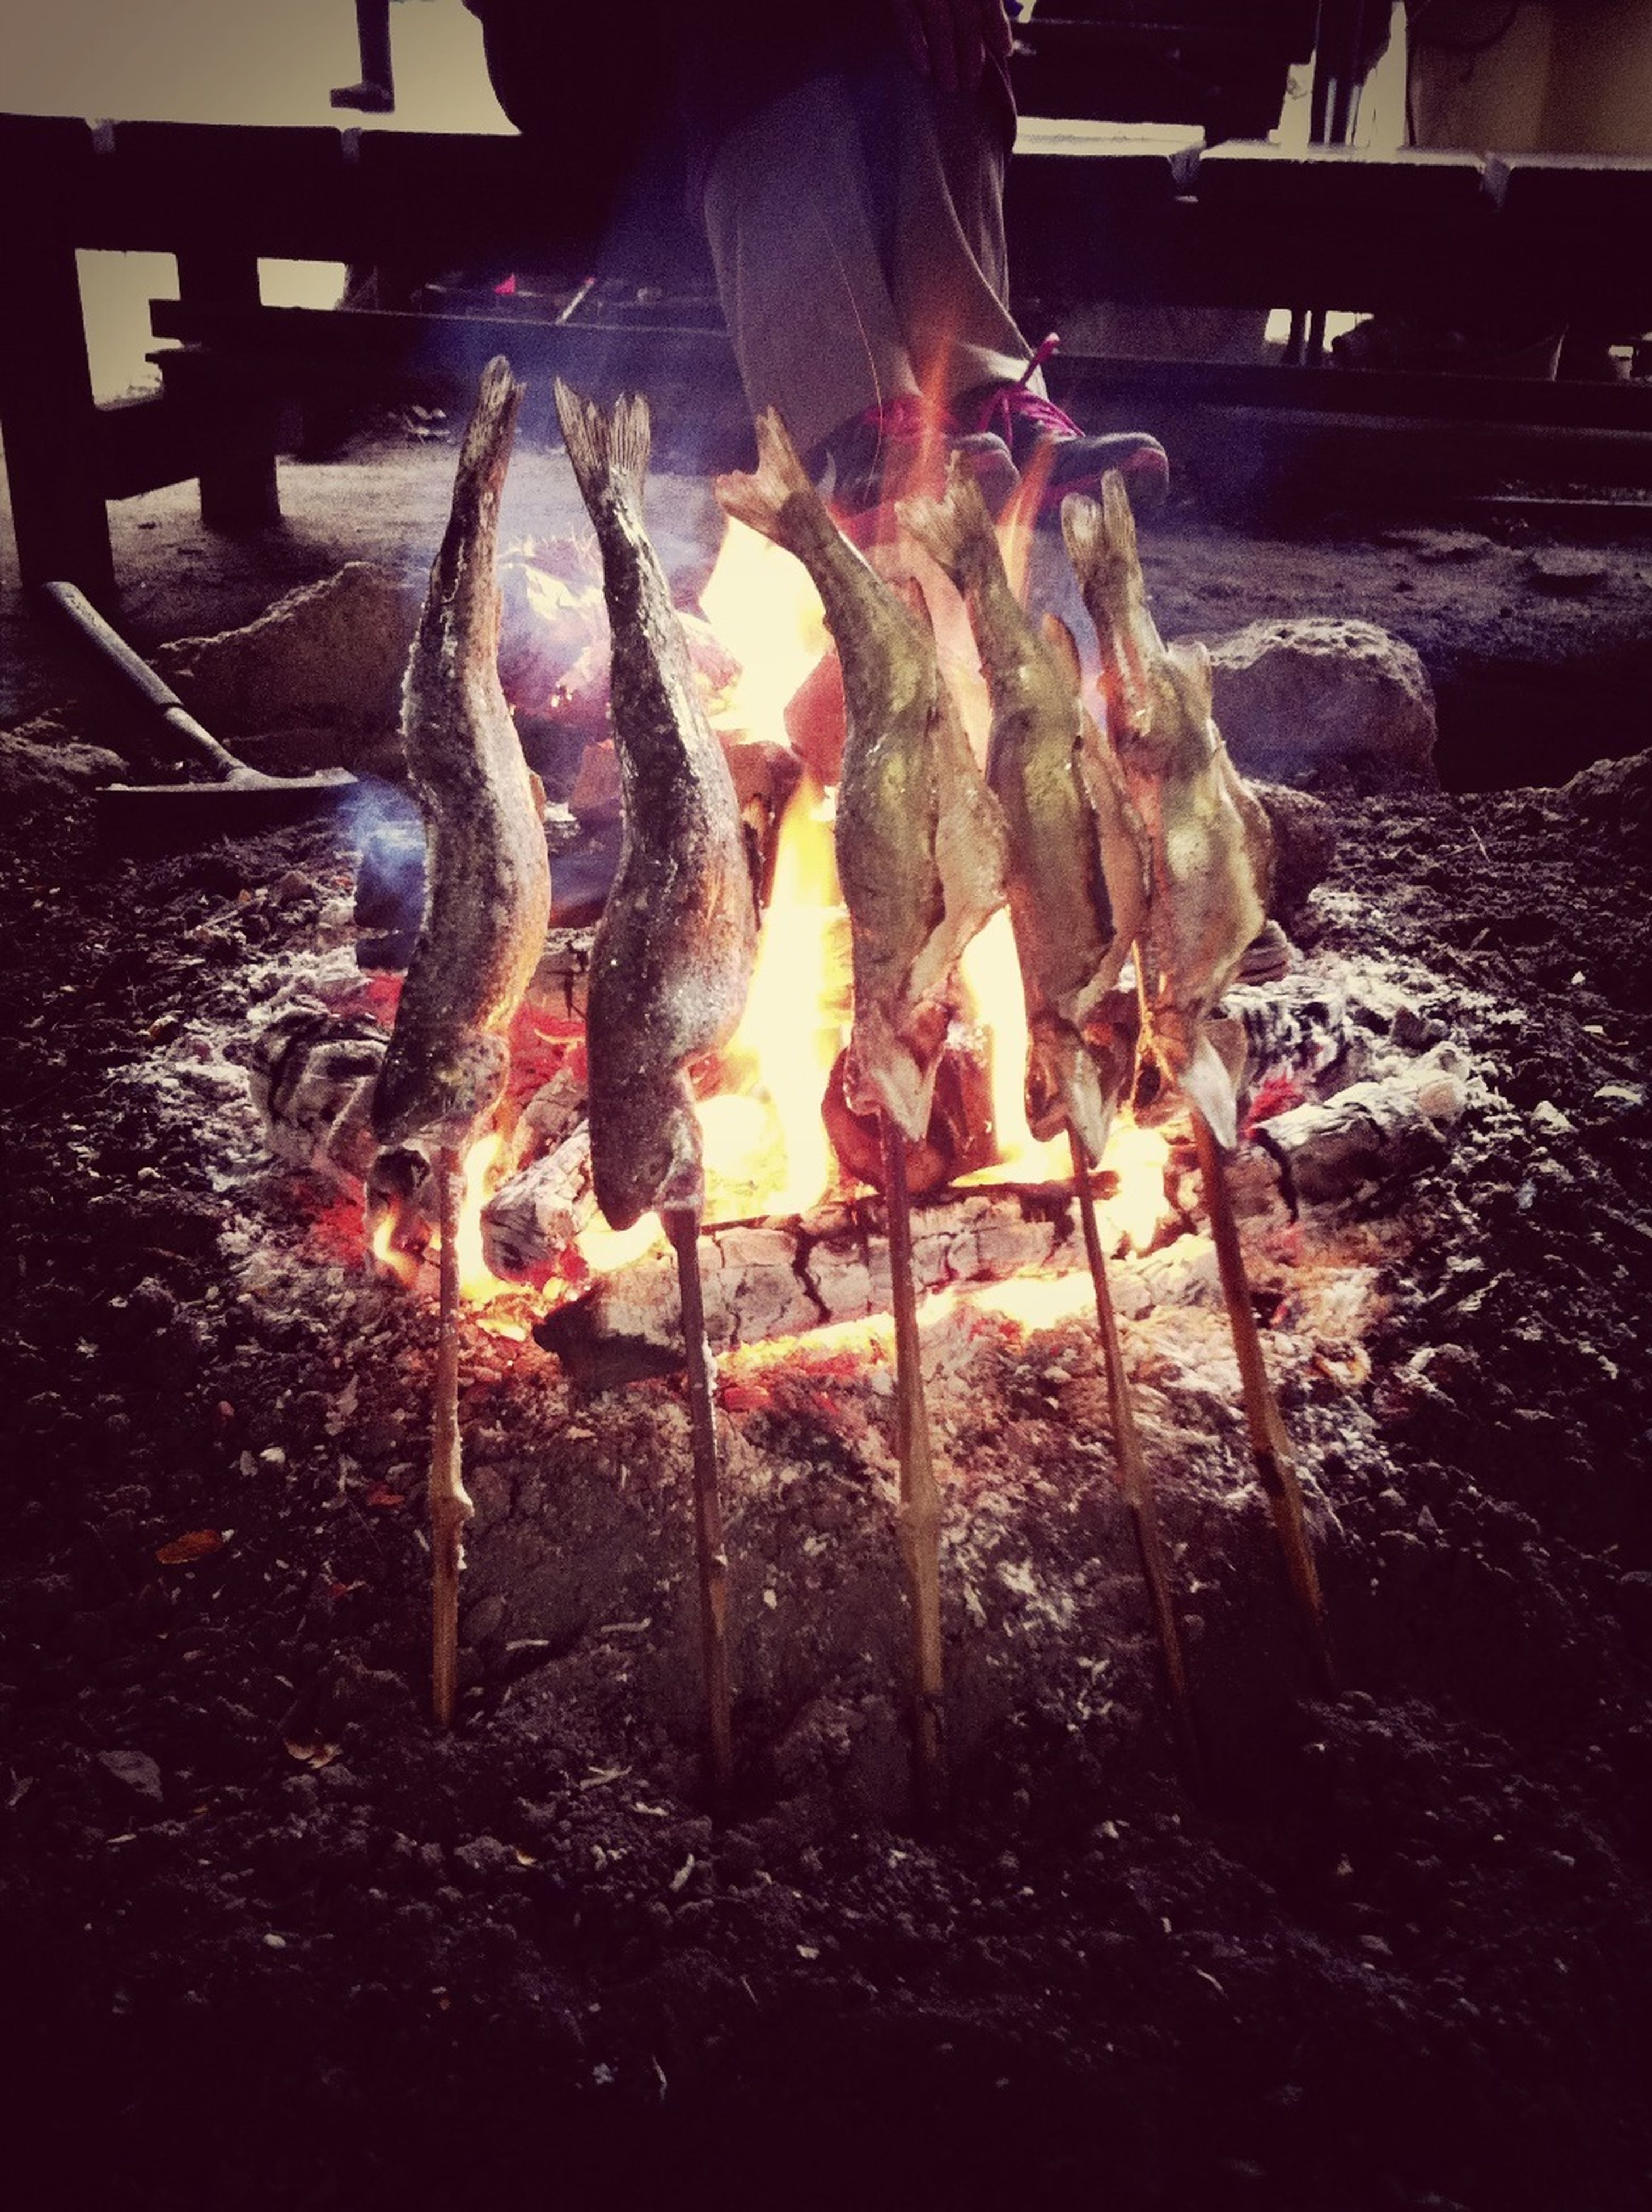 flame, burning, heat - temperature, fire - natural phenomenon, firewood, night, wood - material, indoors, fire, bonfire, glowing, barbecue grill, close-up, log, barbecue, preparation, smoke - physical structure, illuminated, heat, no people